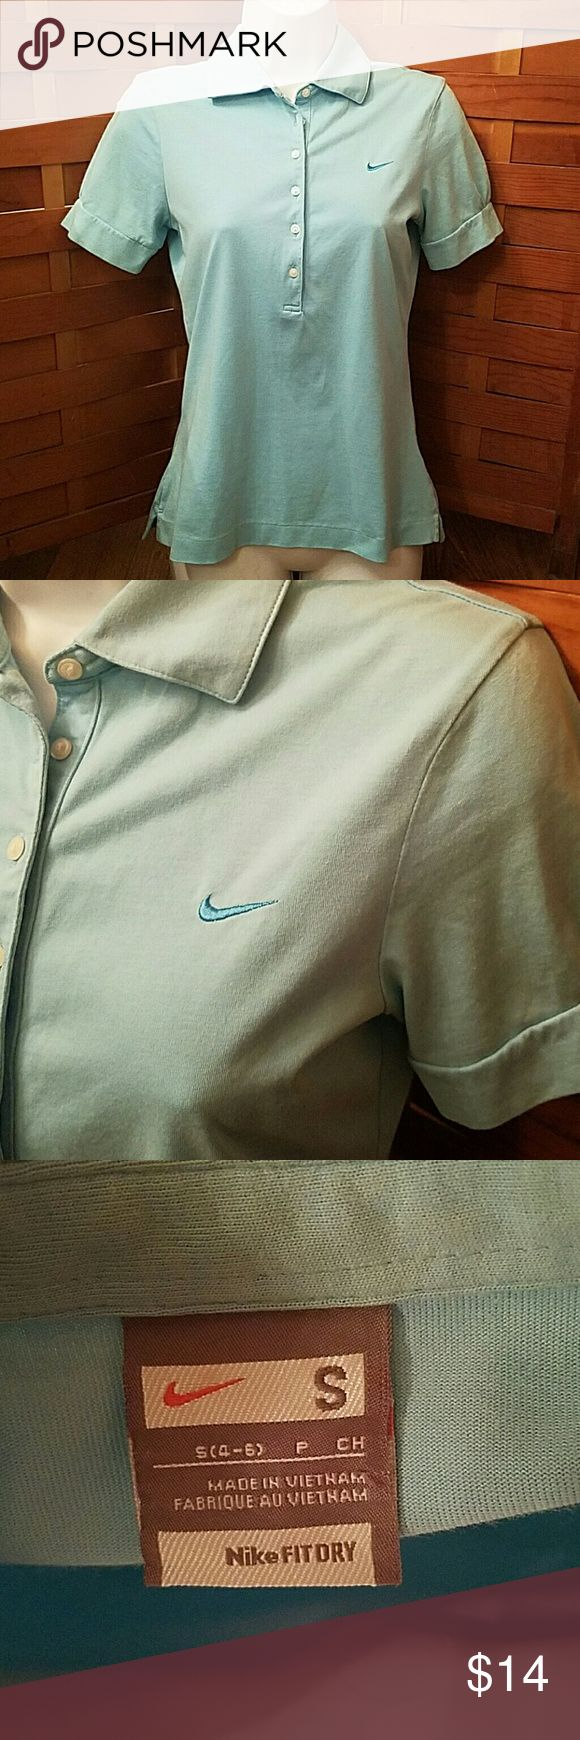 Nike fit dry golf Polo Shirt S 6 button up,size small,powder blue,mint condition Nike Tops